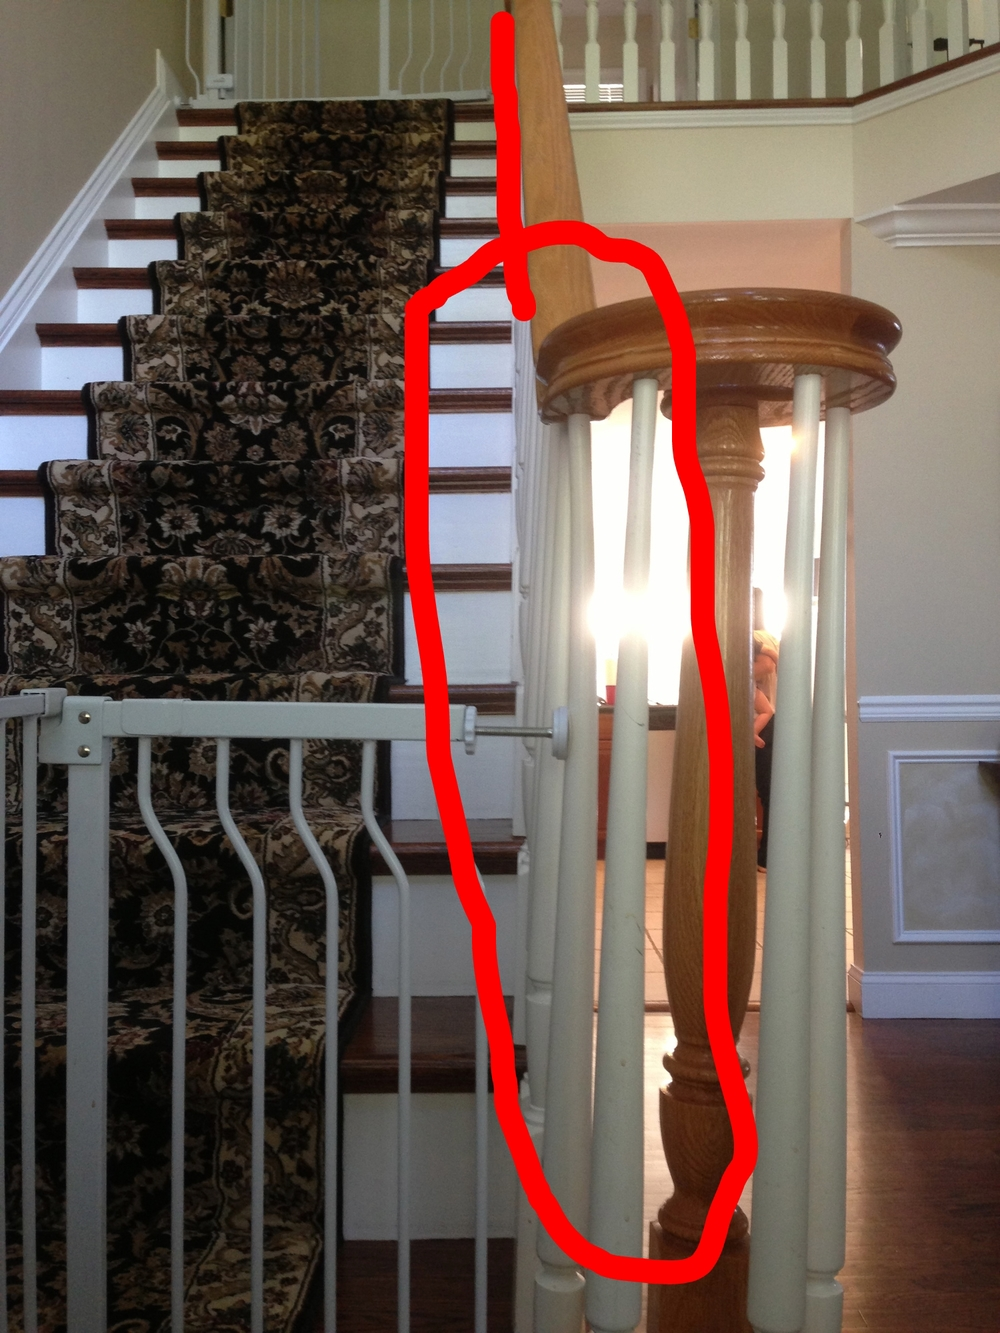 Charmant This Customer Did Severe Permanent Damage To Their New Staircase.  U0026nbsp;They Installed A